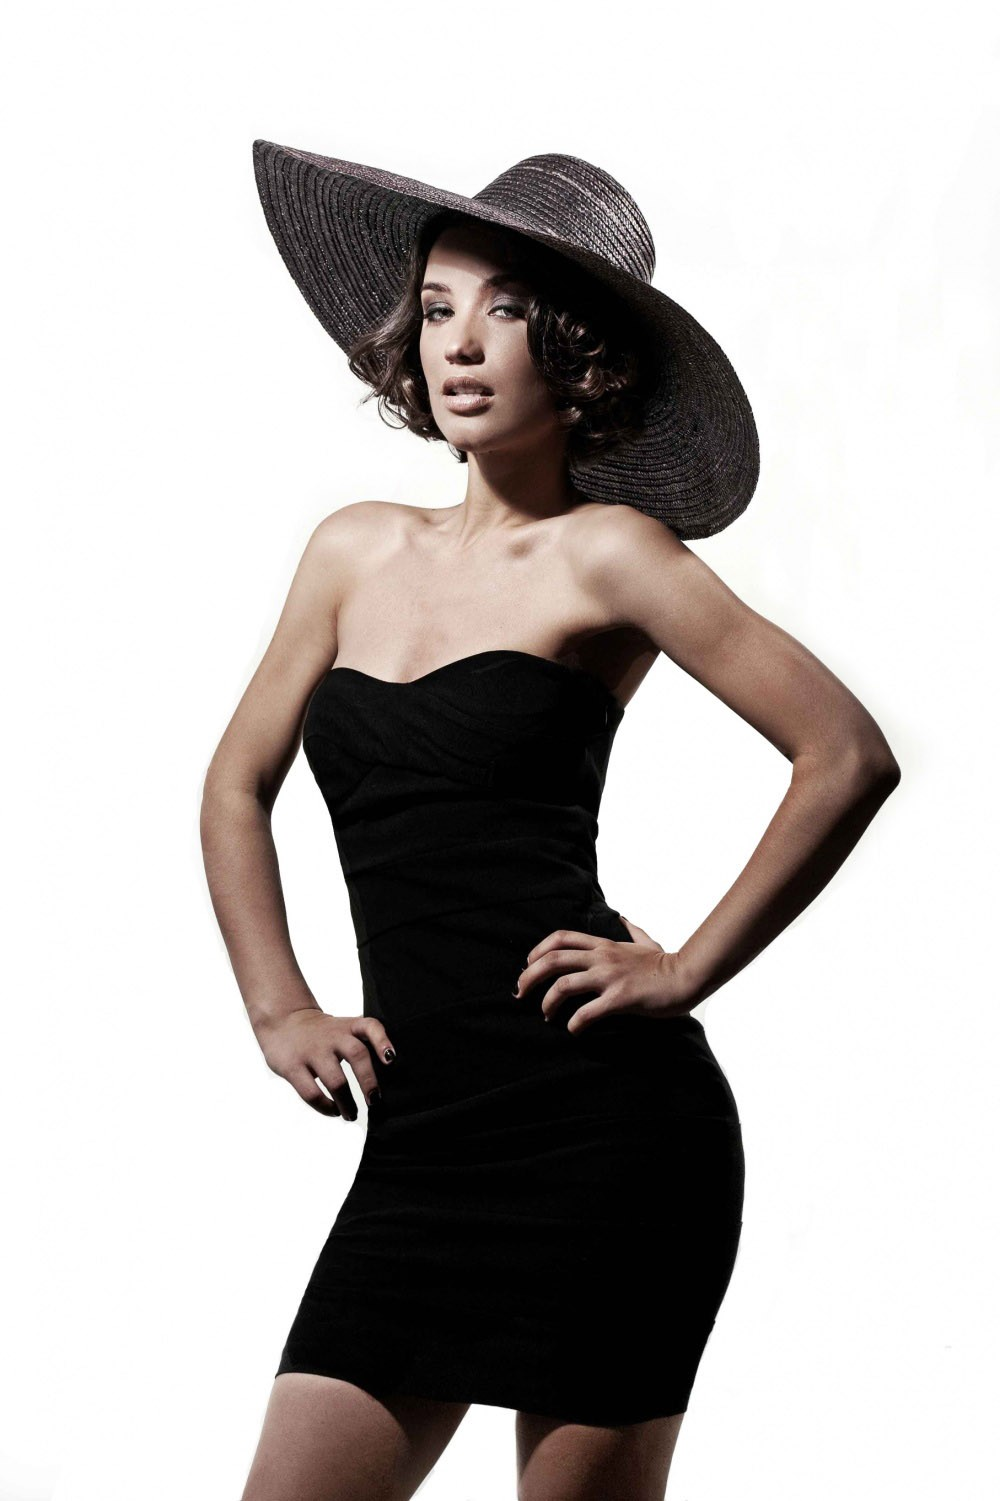 Photo Victoria Daineko in black dress with hat